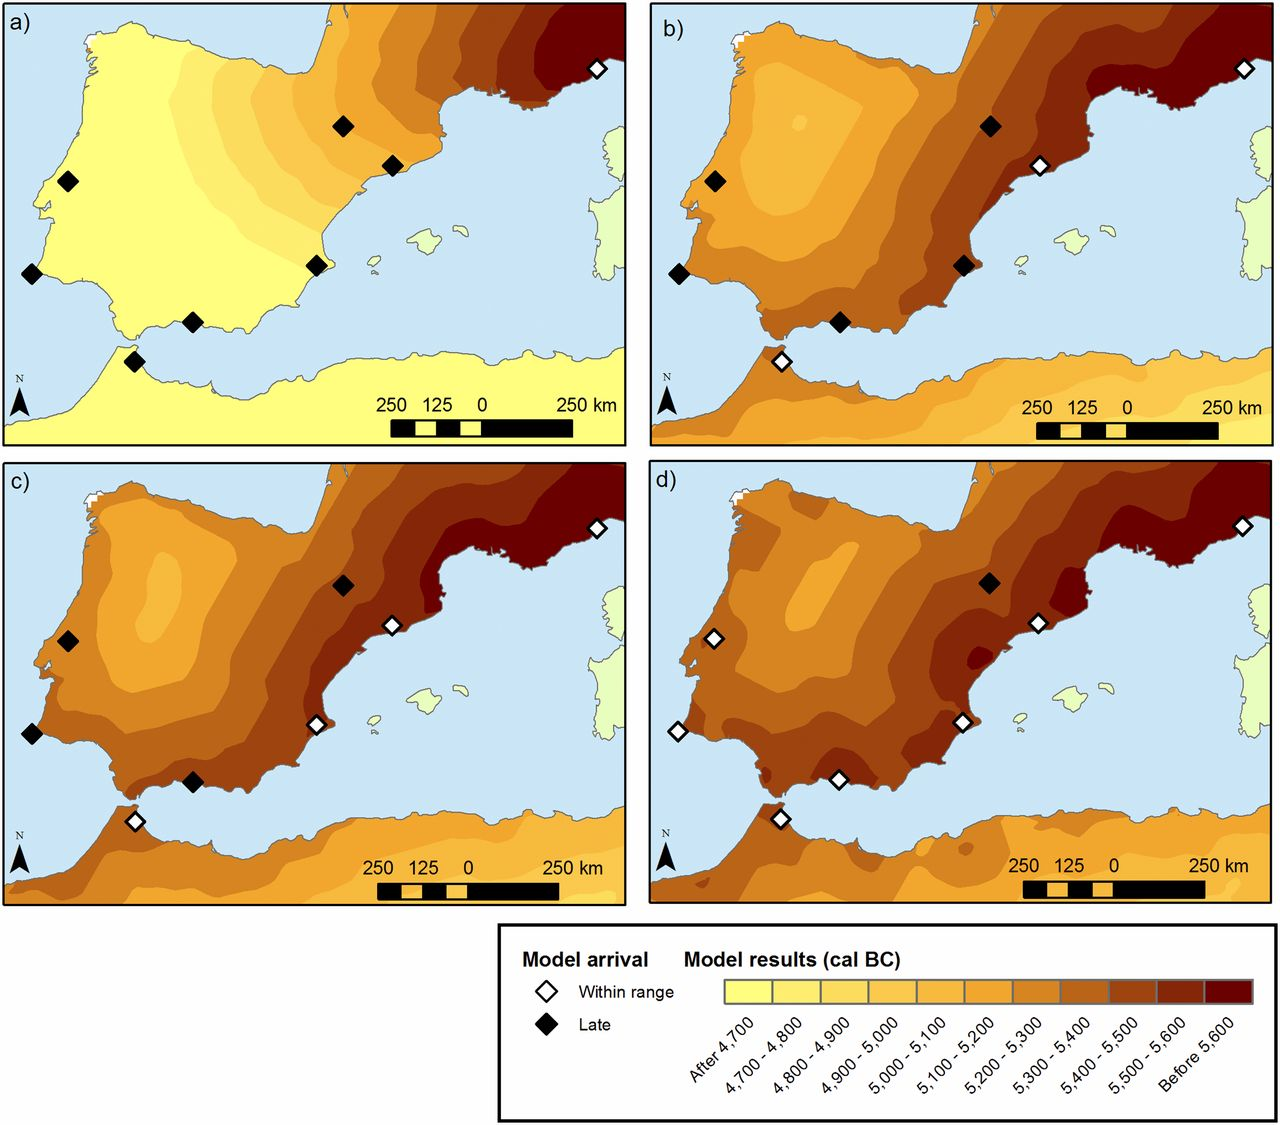 Neolithic spread eight times faster in Mediterranean than rest of Europe